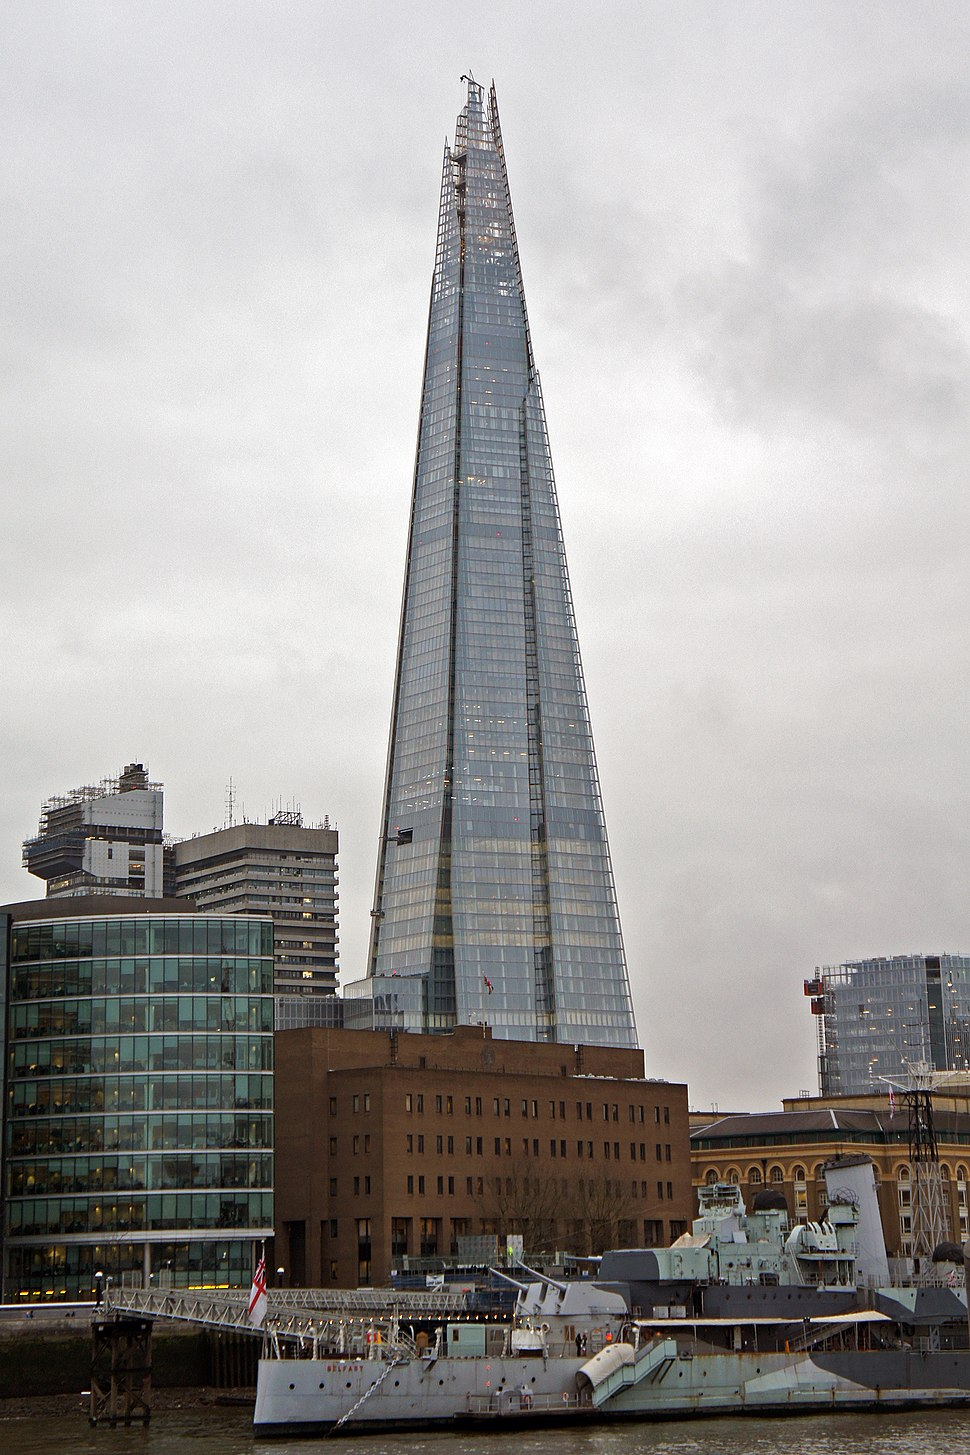 London 01 2013 The Shard 5426